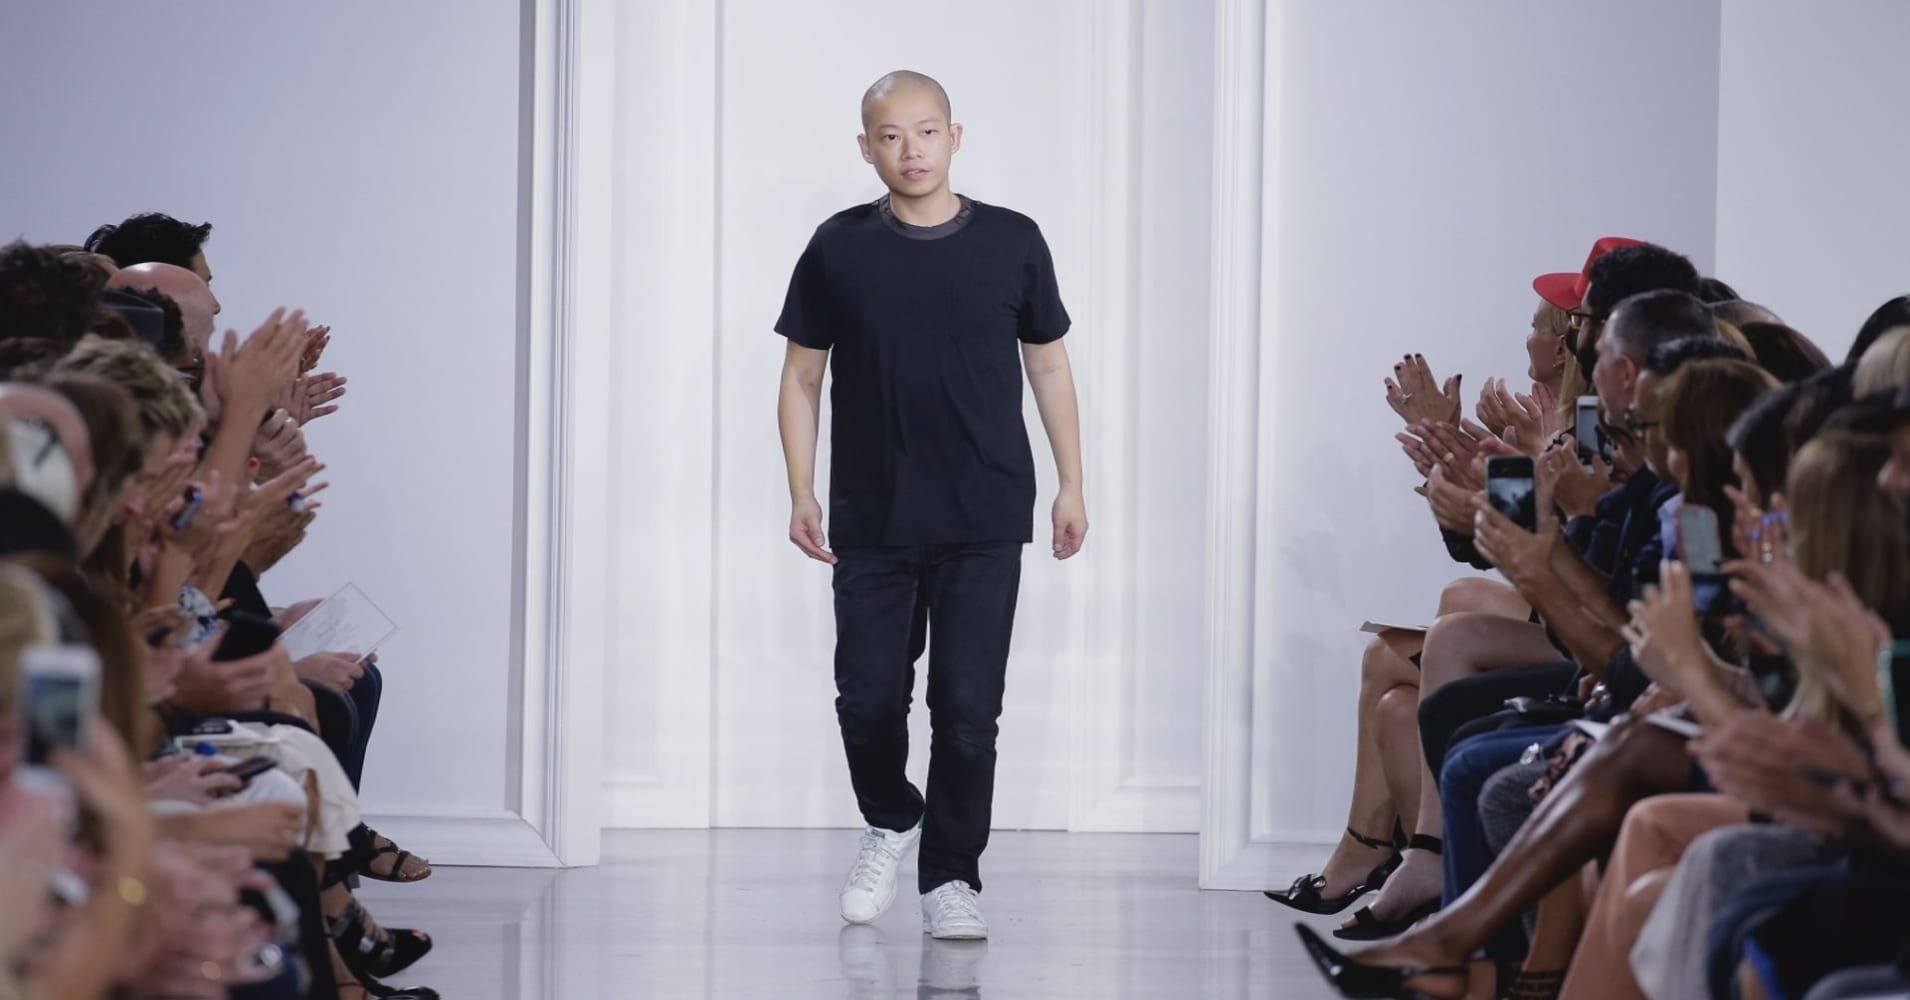 Jason Wu, Mice Obama's favorite designer, wants to expand in Asia on home product design, home house design, home luxury design, home gardening design, home money design, home technology design, home construction design, home commercial design, home energy design, design design, home health design, home wine design, home models design, home stage design, home interiors design, home inspiration design, home cafe design, home workspace design, home wireless design, home industrial design,